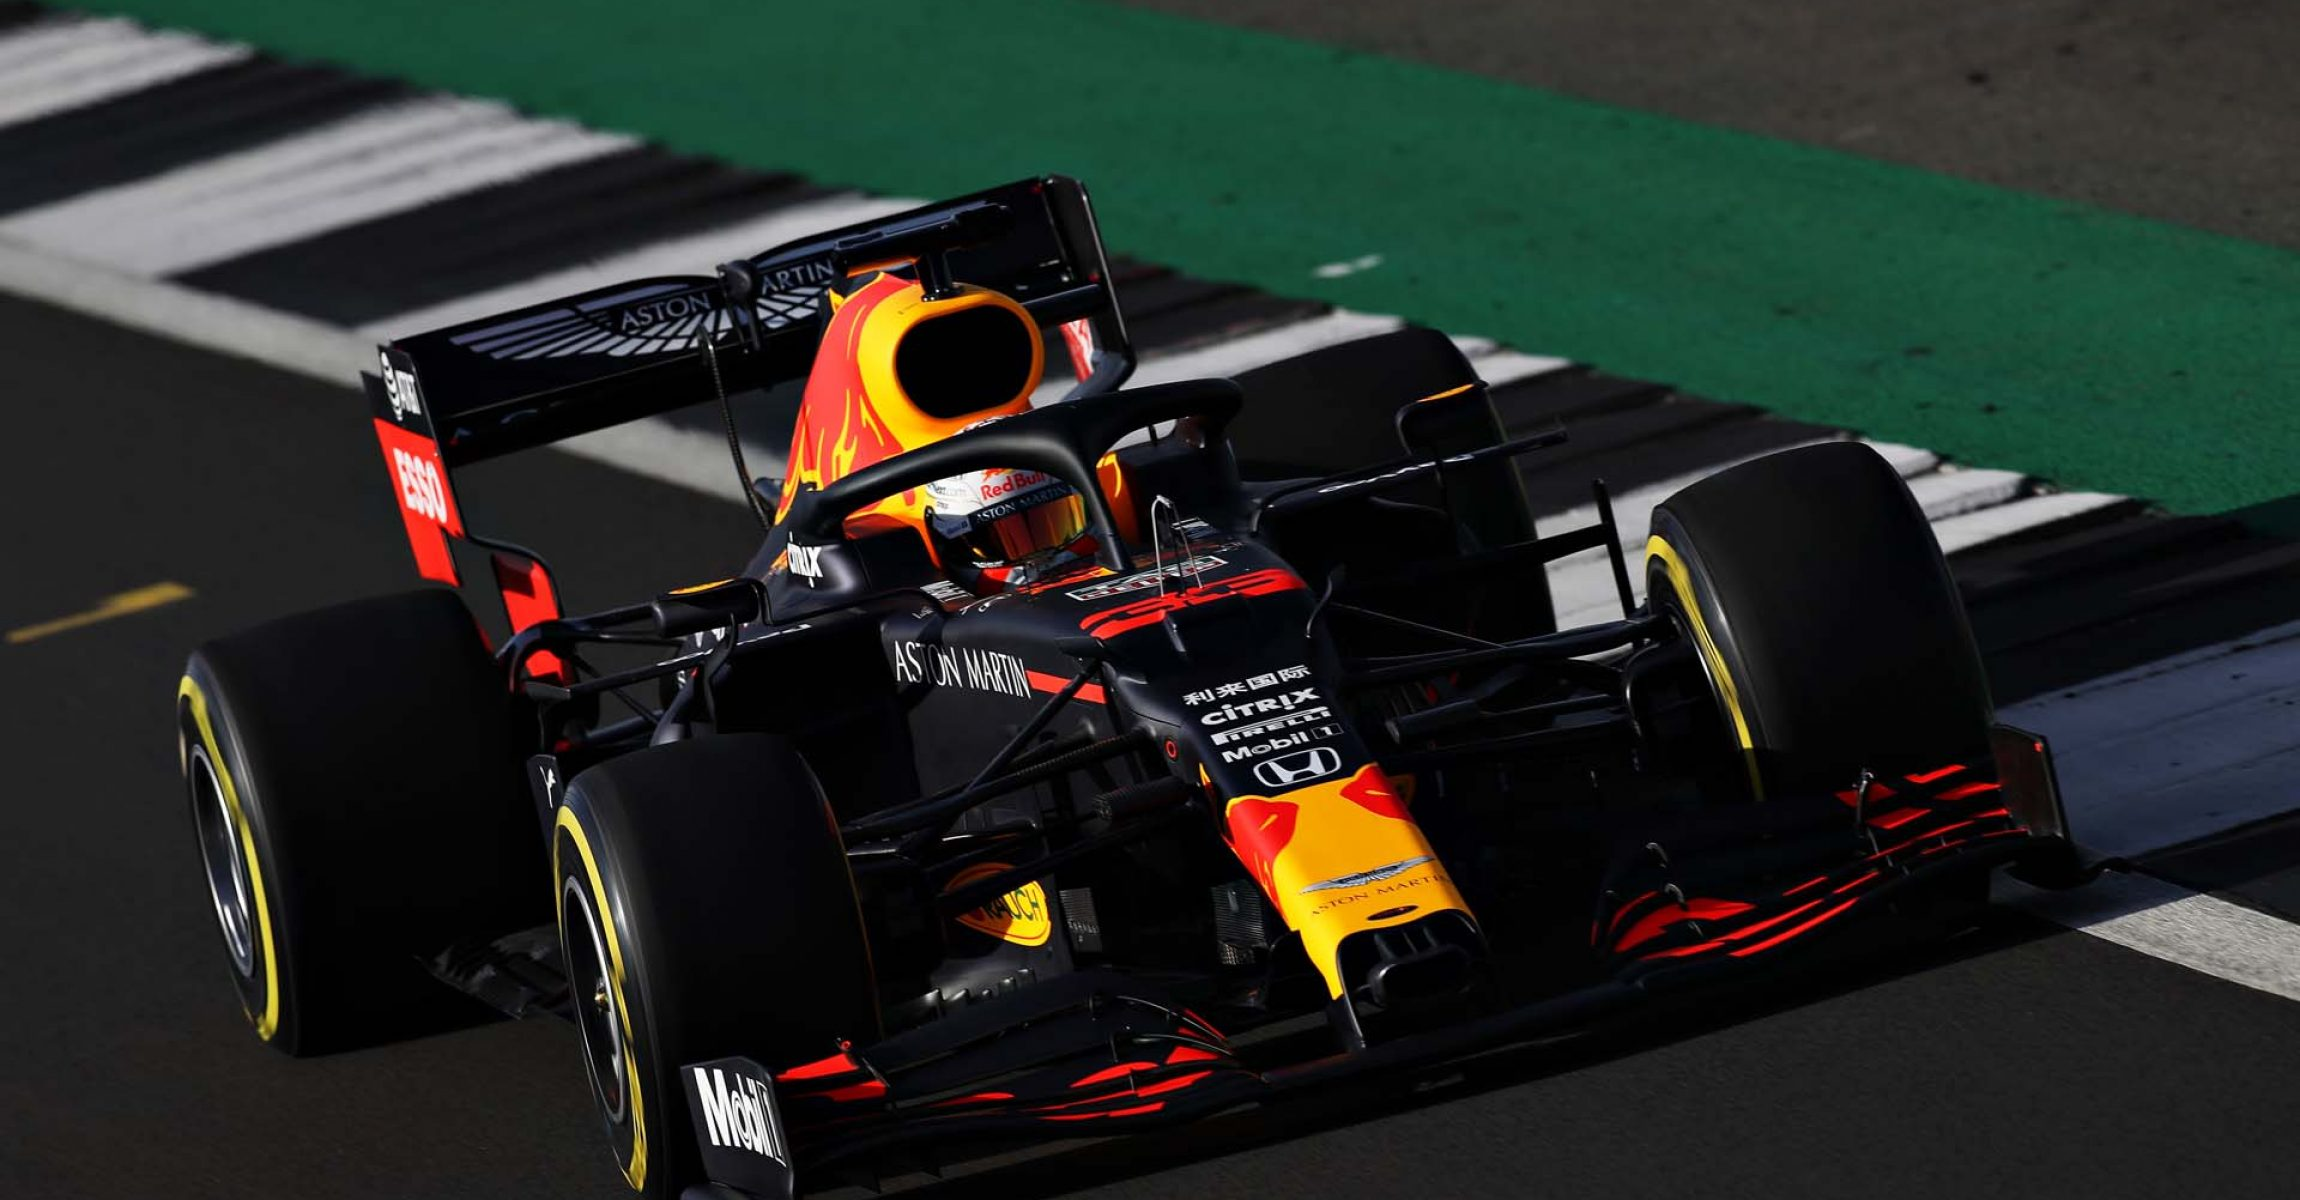 NORTHAMPTON, ENGLAND - FEBRUARY 12: Max Verstappen of the Netherlands driving the (33) Aston Martin Red Bull Racing RB16 during the Red Bull Racing RB16 launch at Silverstone Circuit on February 12, 2020 in Northampton, England. (Photo by Mark Thompson/Getty Images) // Getty Images / Red Bull Content Pool // AP-233BNZ7CS2111 // Usage for editorial use only //